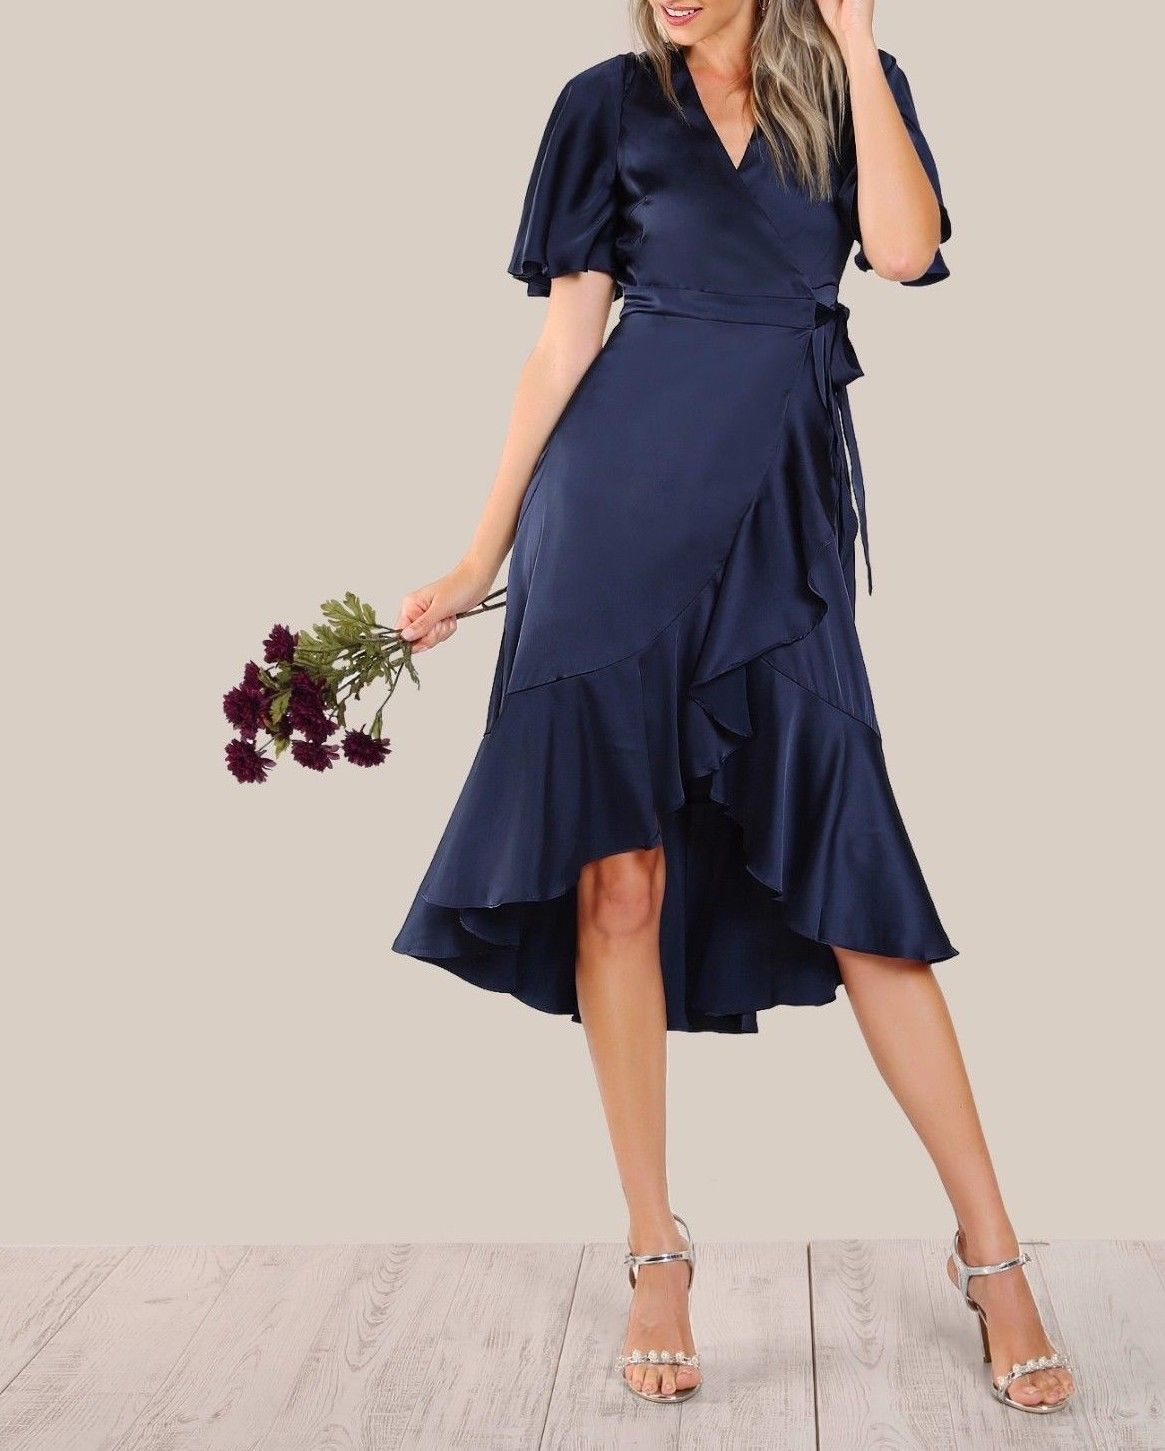 e4024731b2 V Neck Flounce Sleeve Ruffle Hem Fit and Flare Satin Wrap Tie Belted Navy  Dress